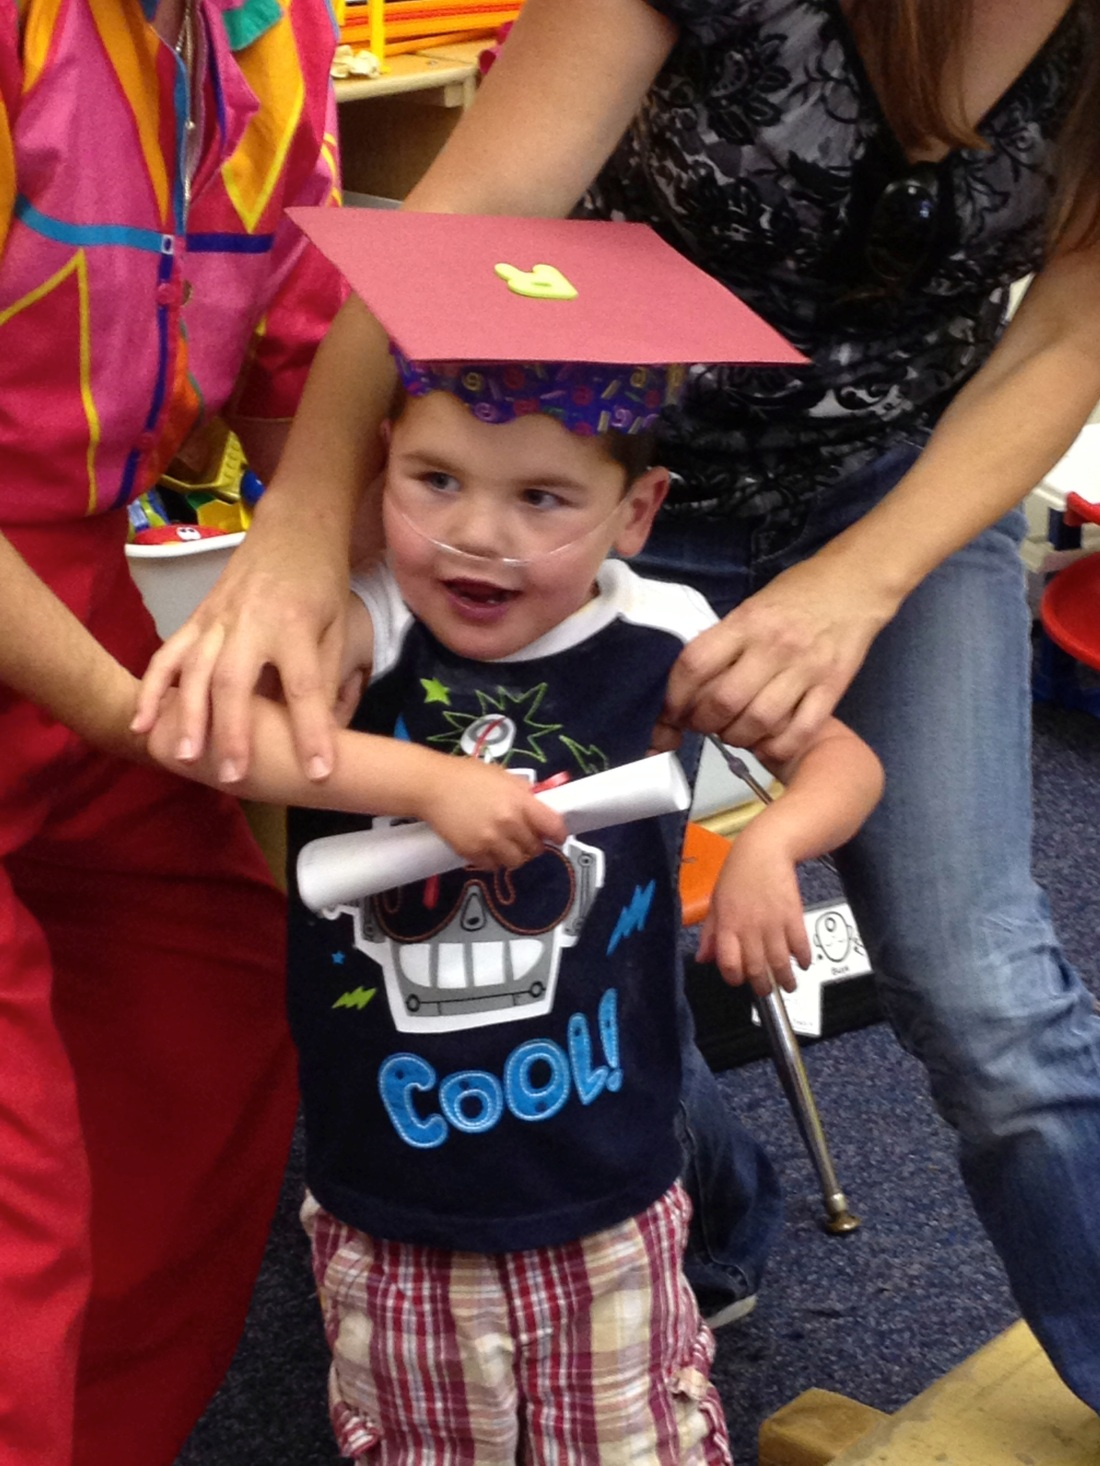 Rudy's official graduation from the Bear Club - his special county special ed preschool class!